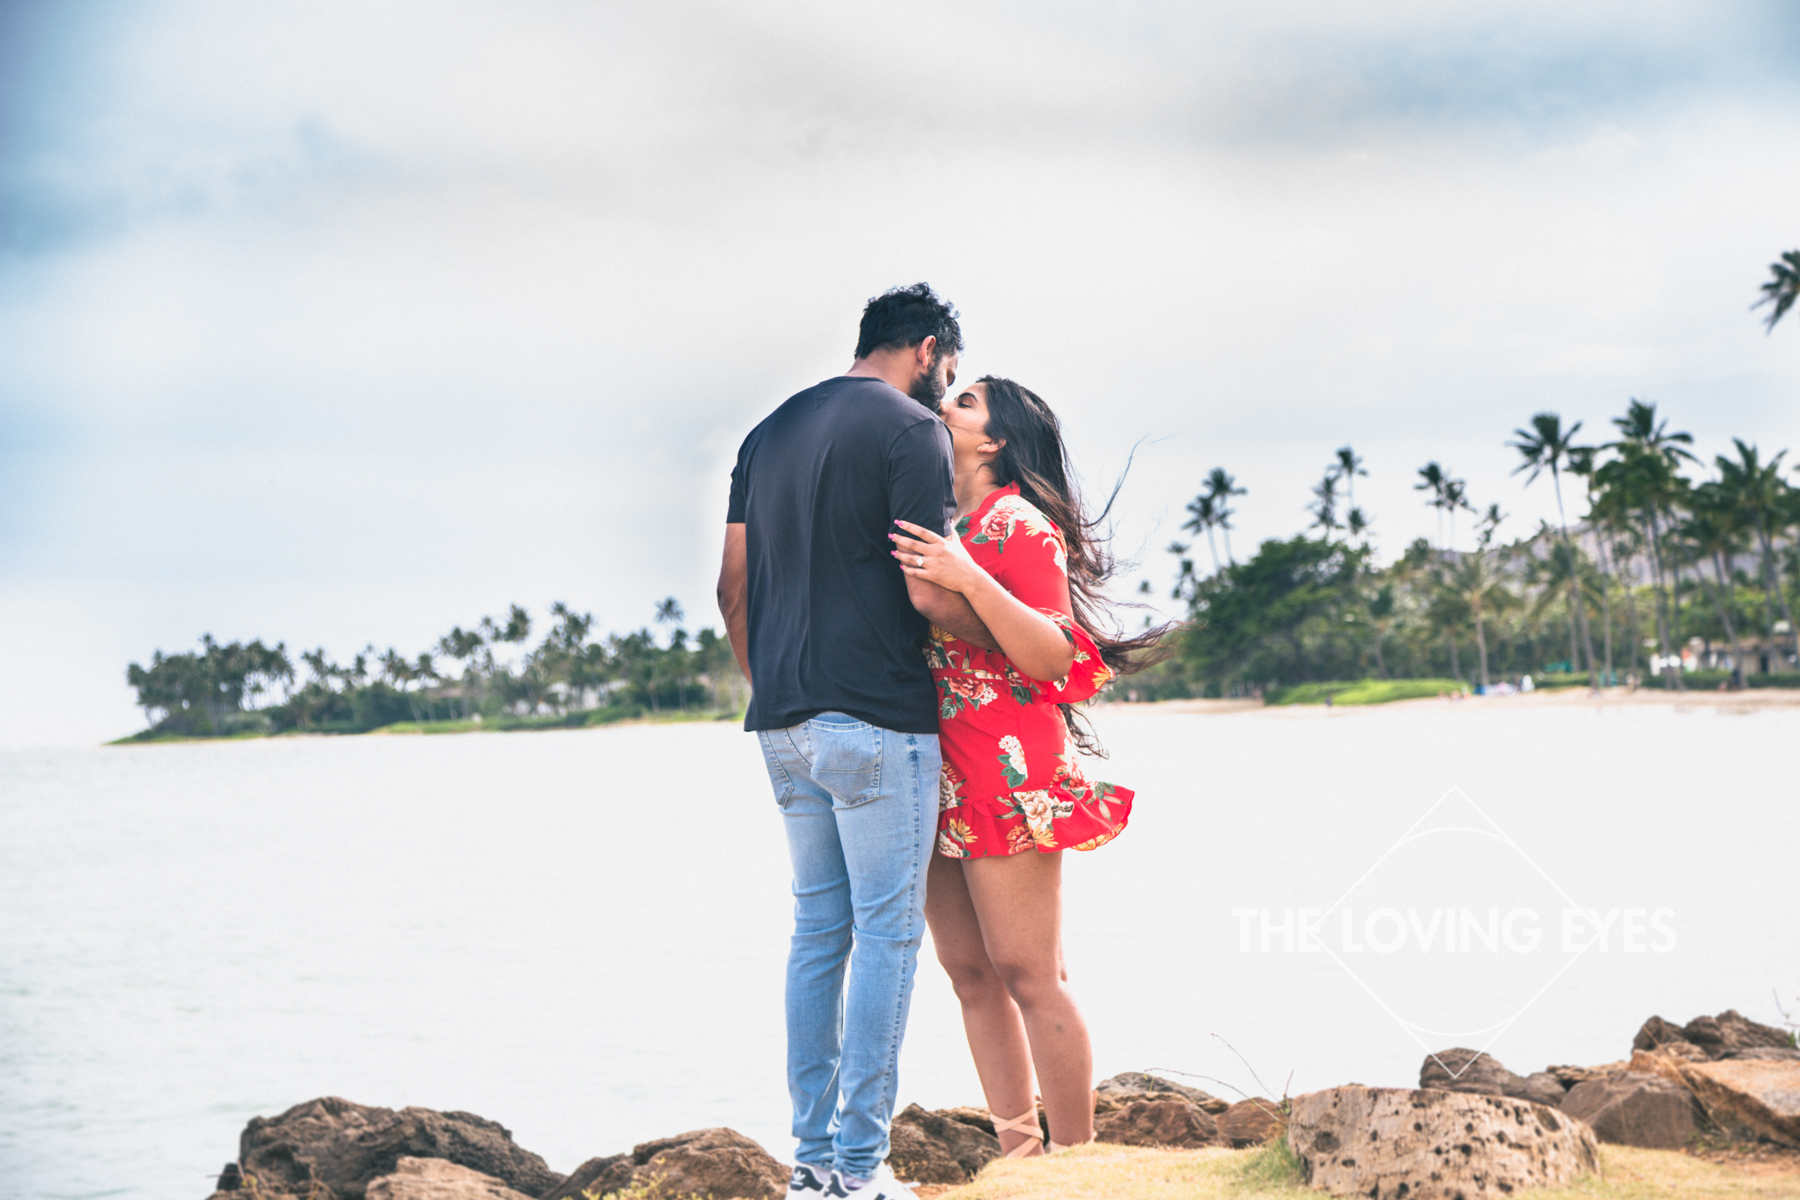 Couple embracing each other at Waialae Beach Park while on vacation in Hawaii